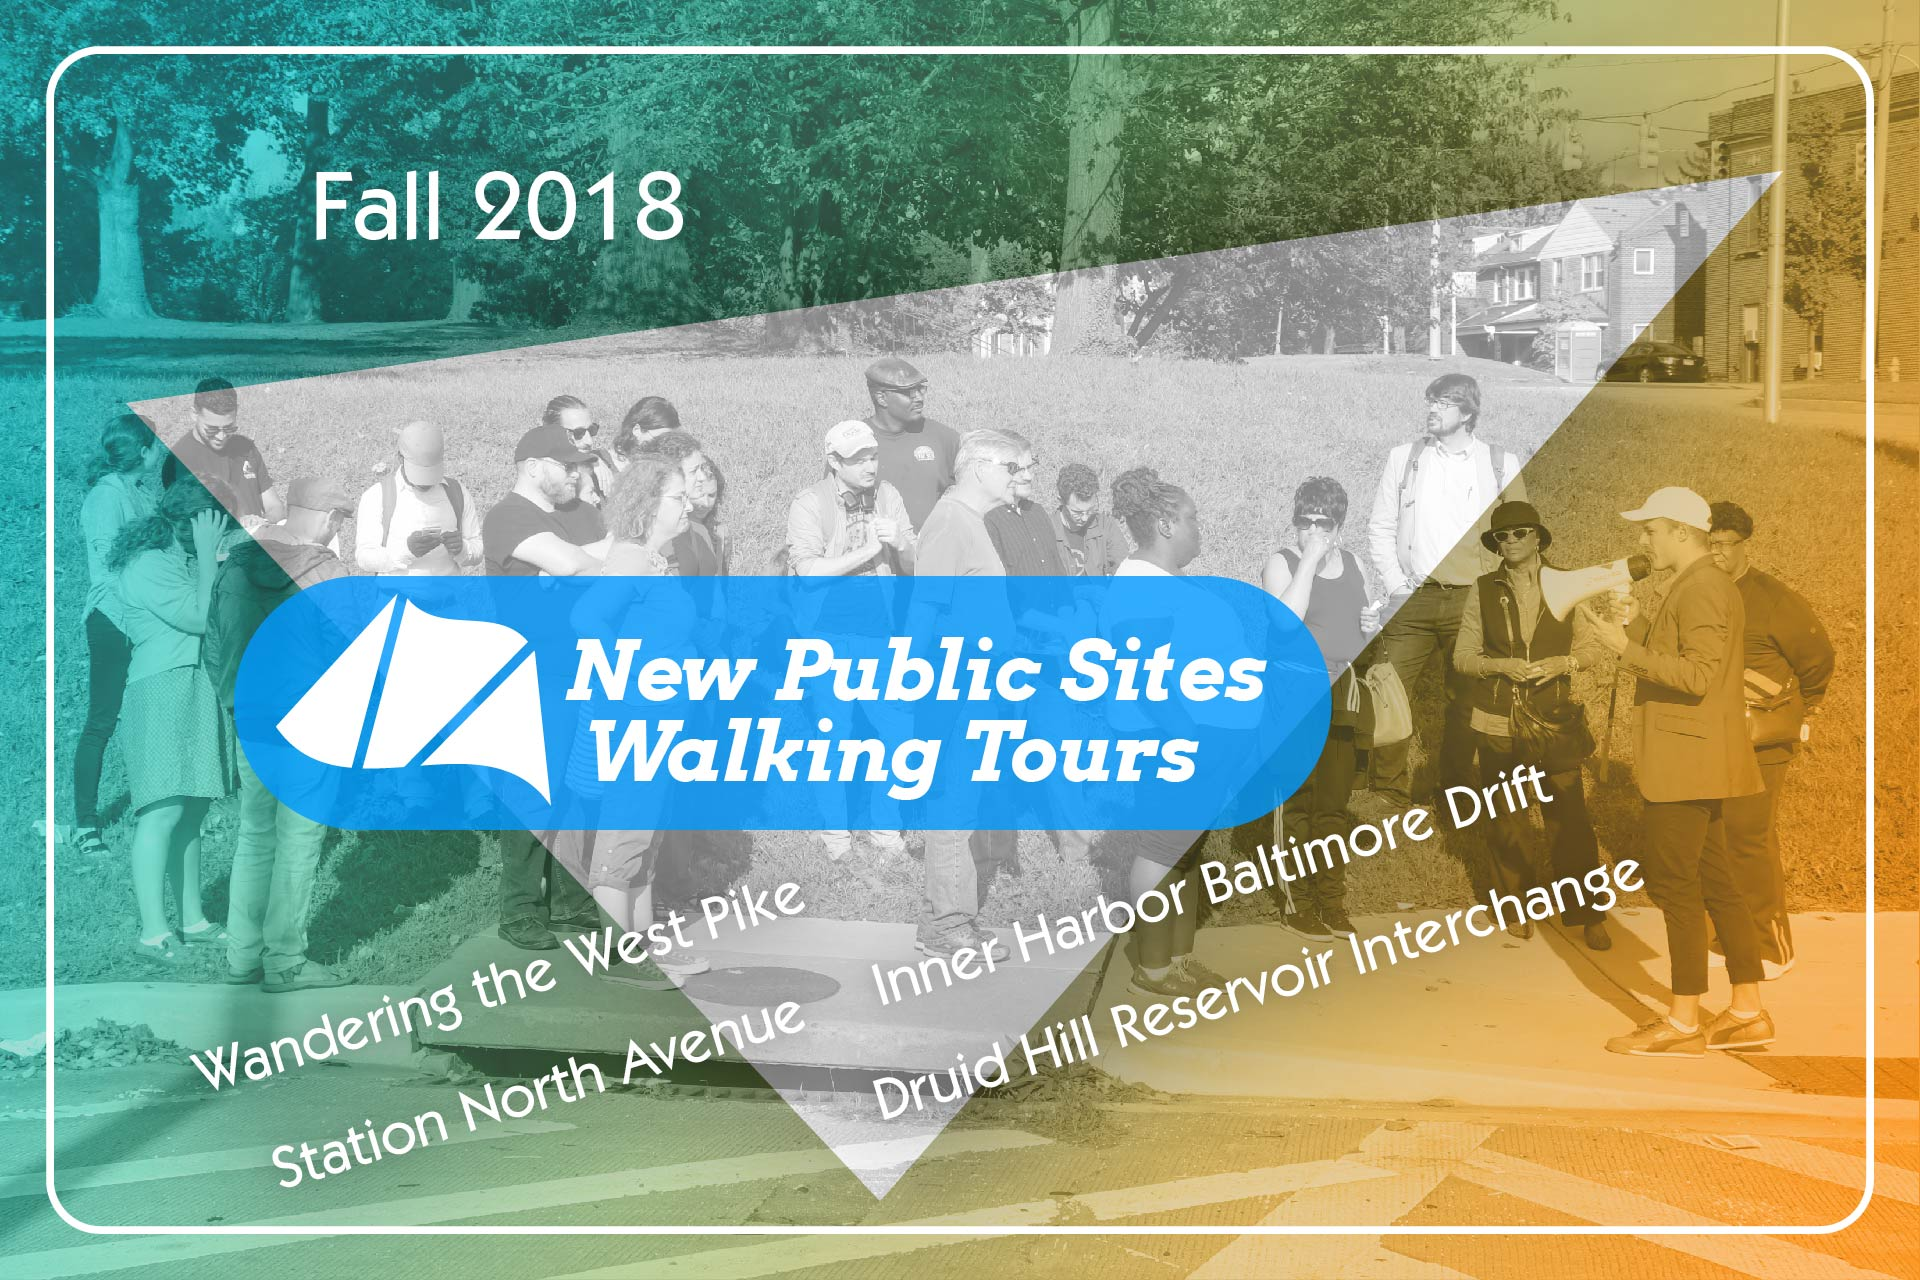 New Public Sites Fall 2018 Walking Tours